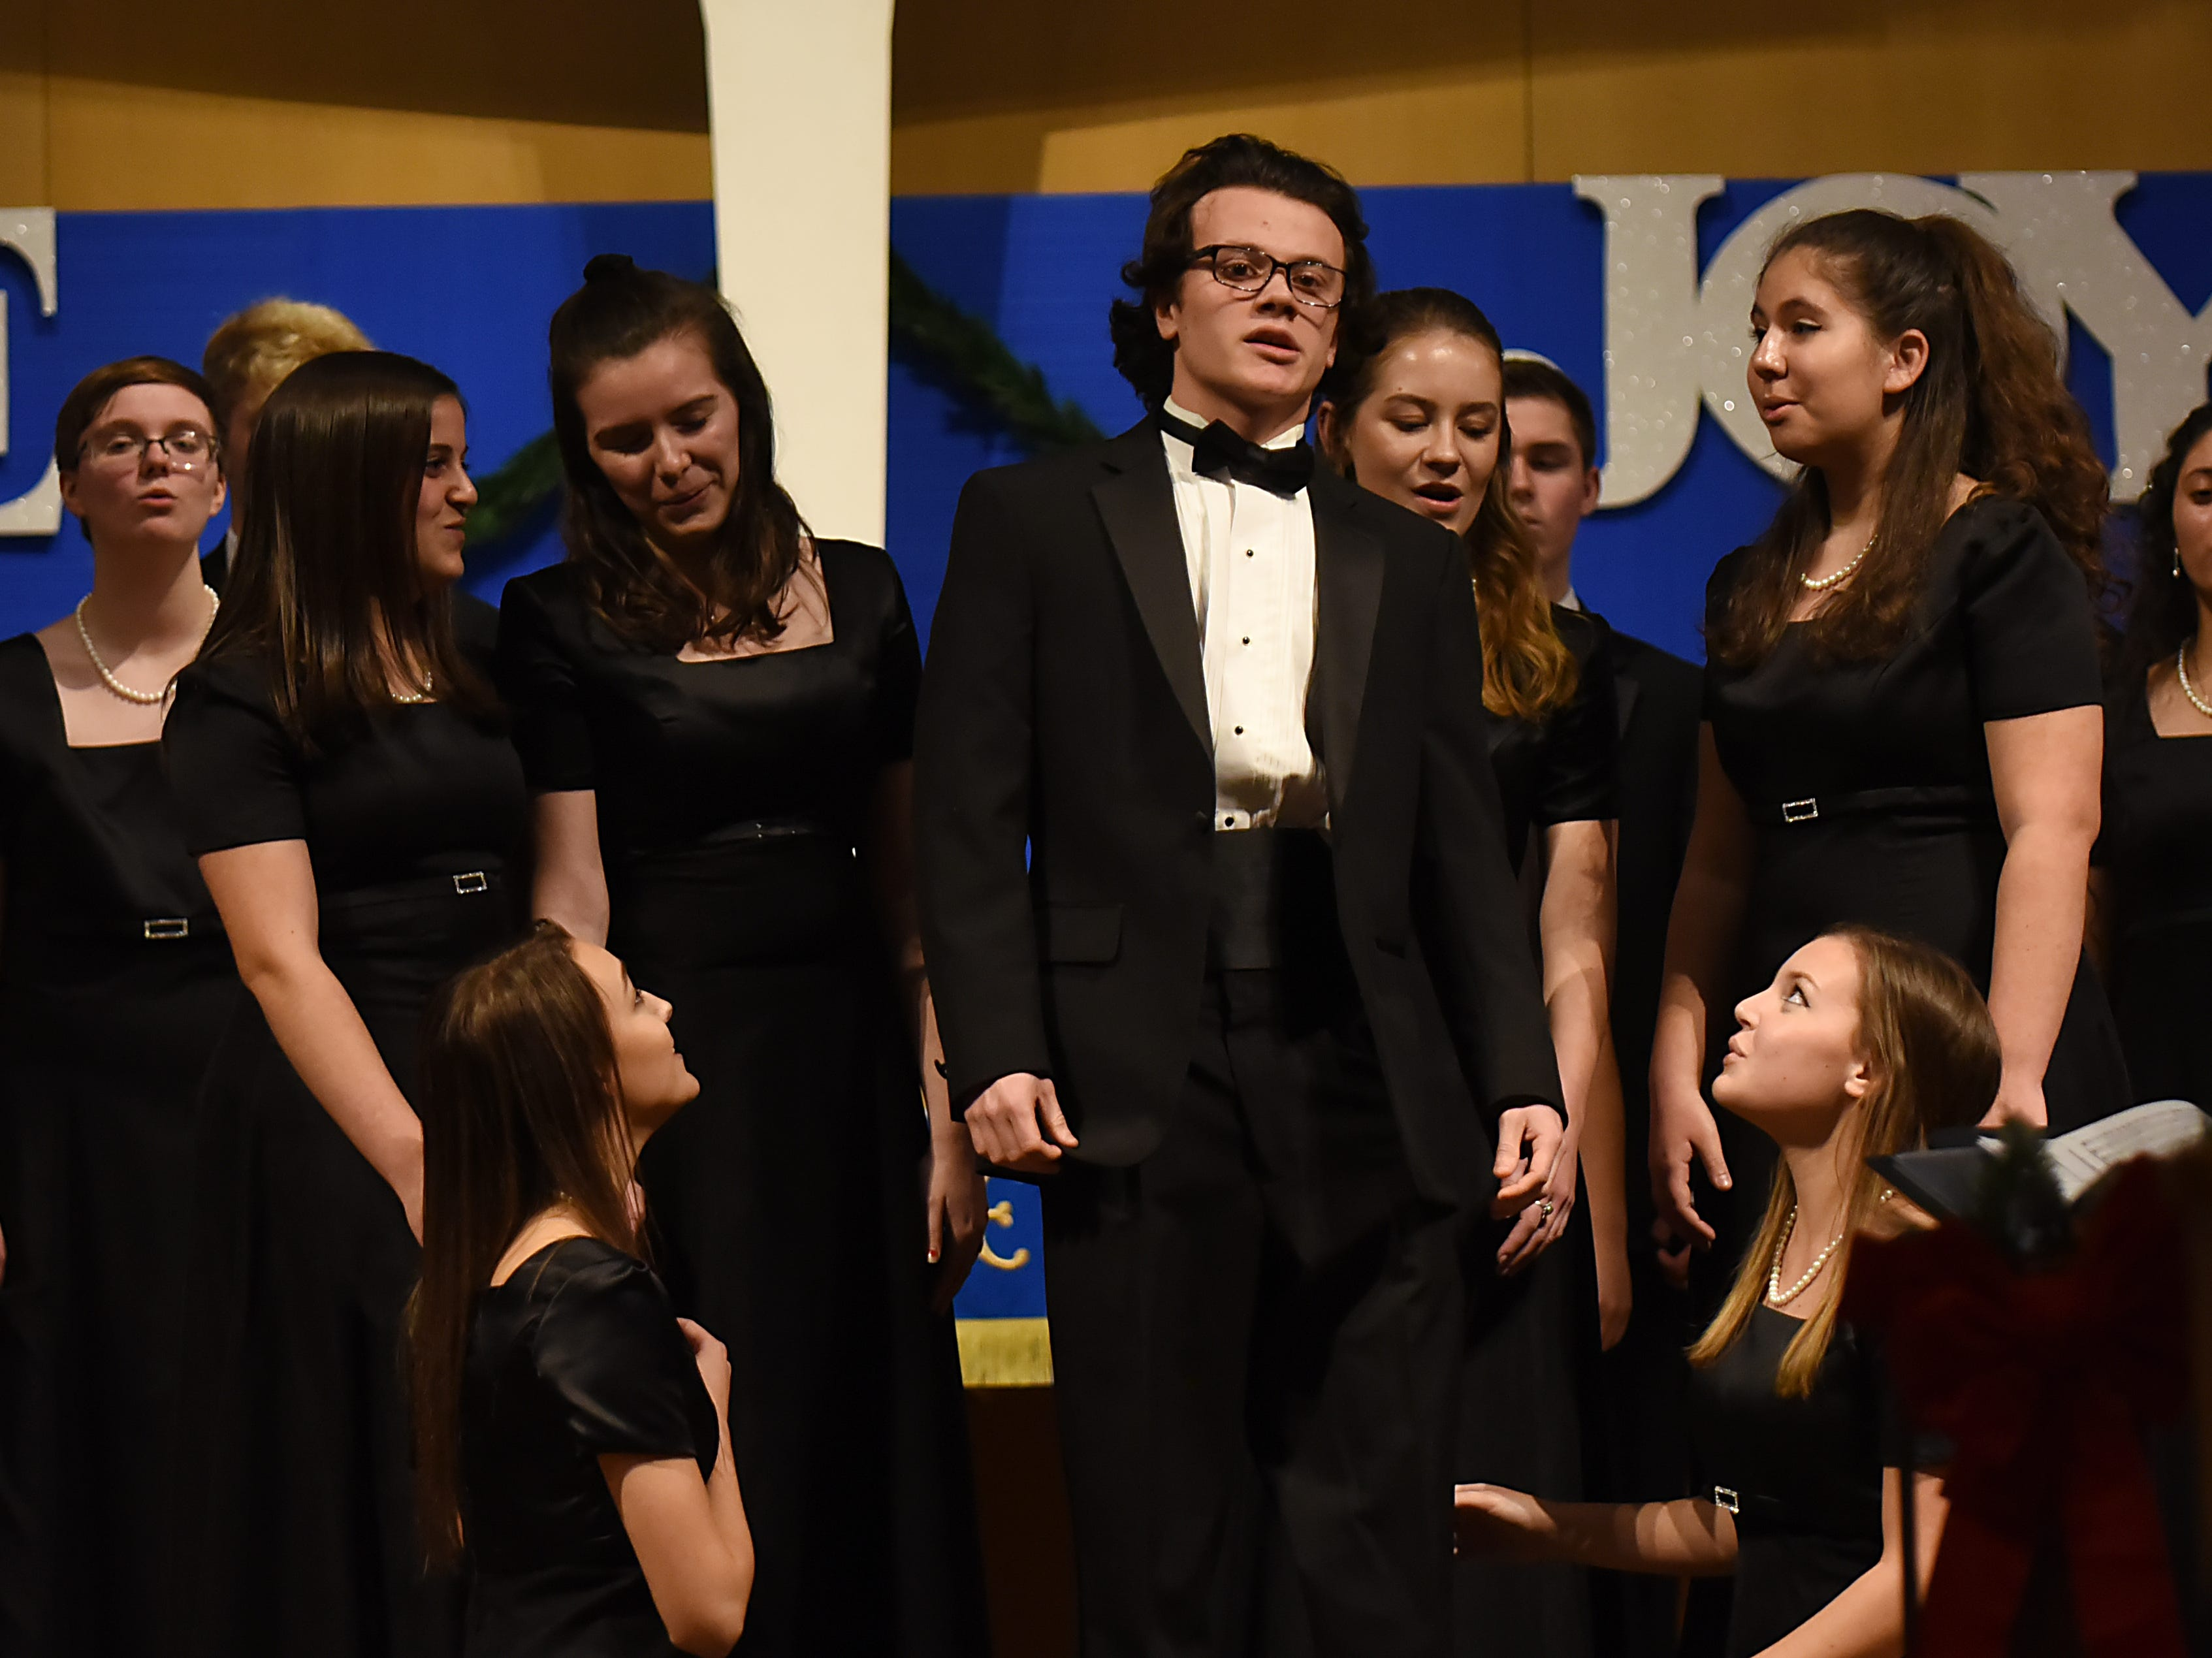 Daniel Perrault, center, sings during a Morris Knolls Madrigal Choir dress rehearsal at Denville Community Church in Denville on Thursday November 29, 2018 prior to their performance at the White House.